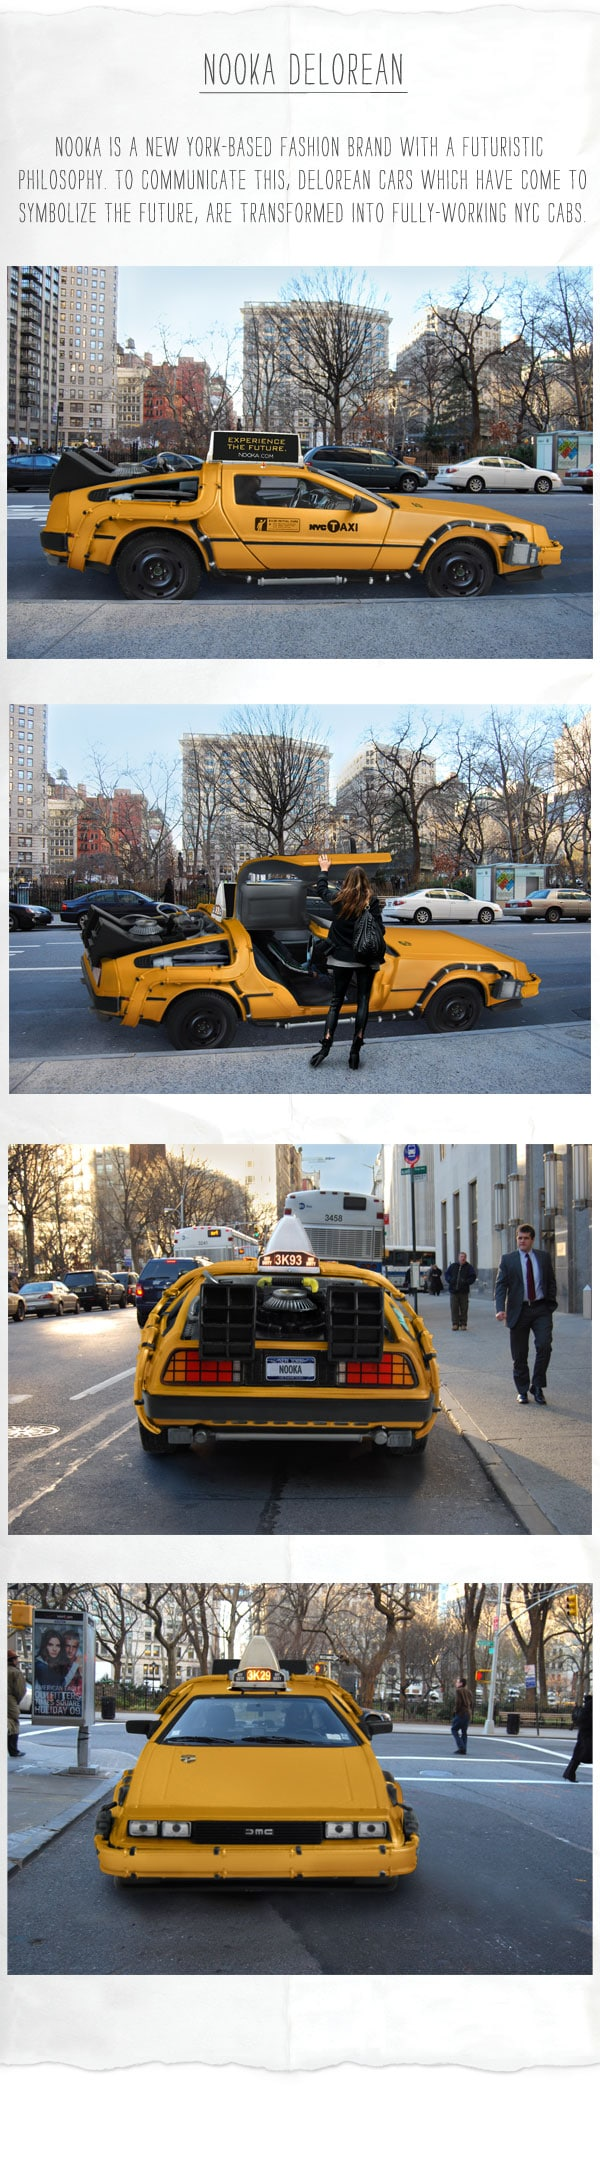 delorean-car-taxi-concept